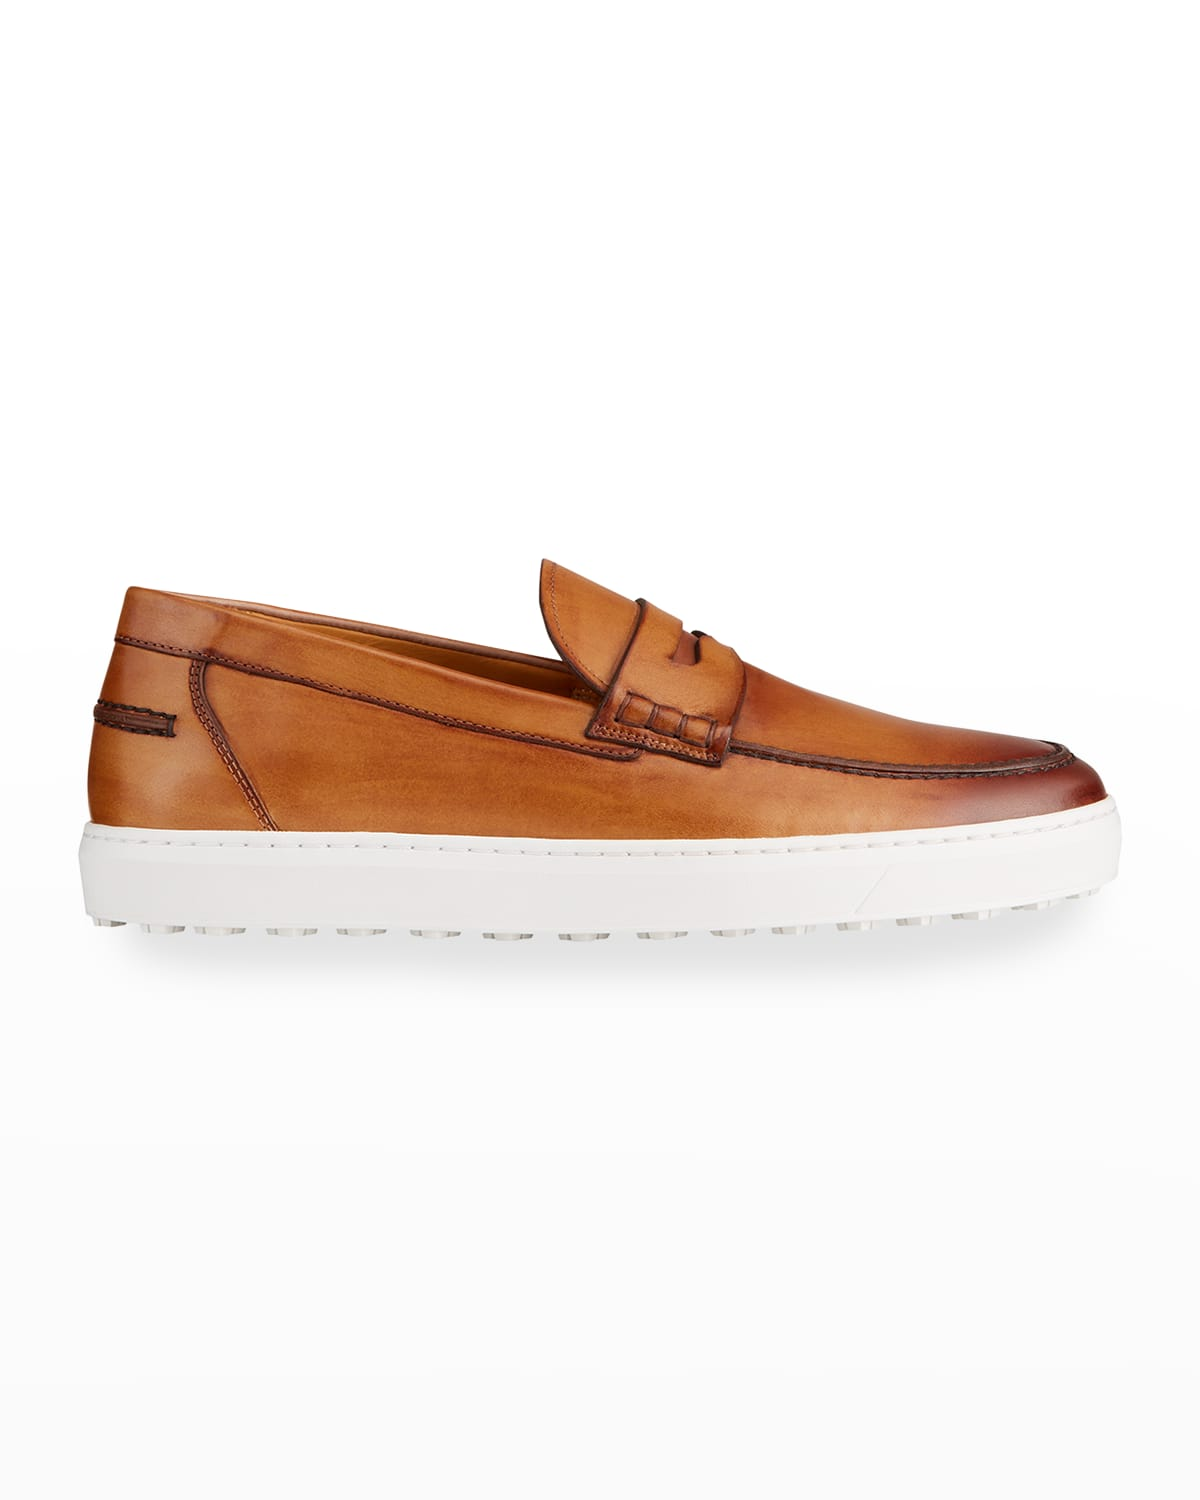 Men's Calf Leather Penny Slip-Ons